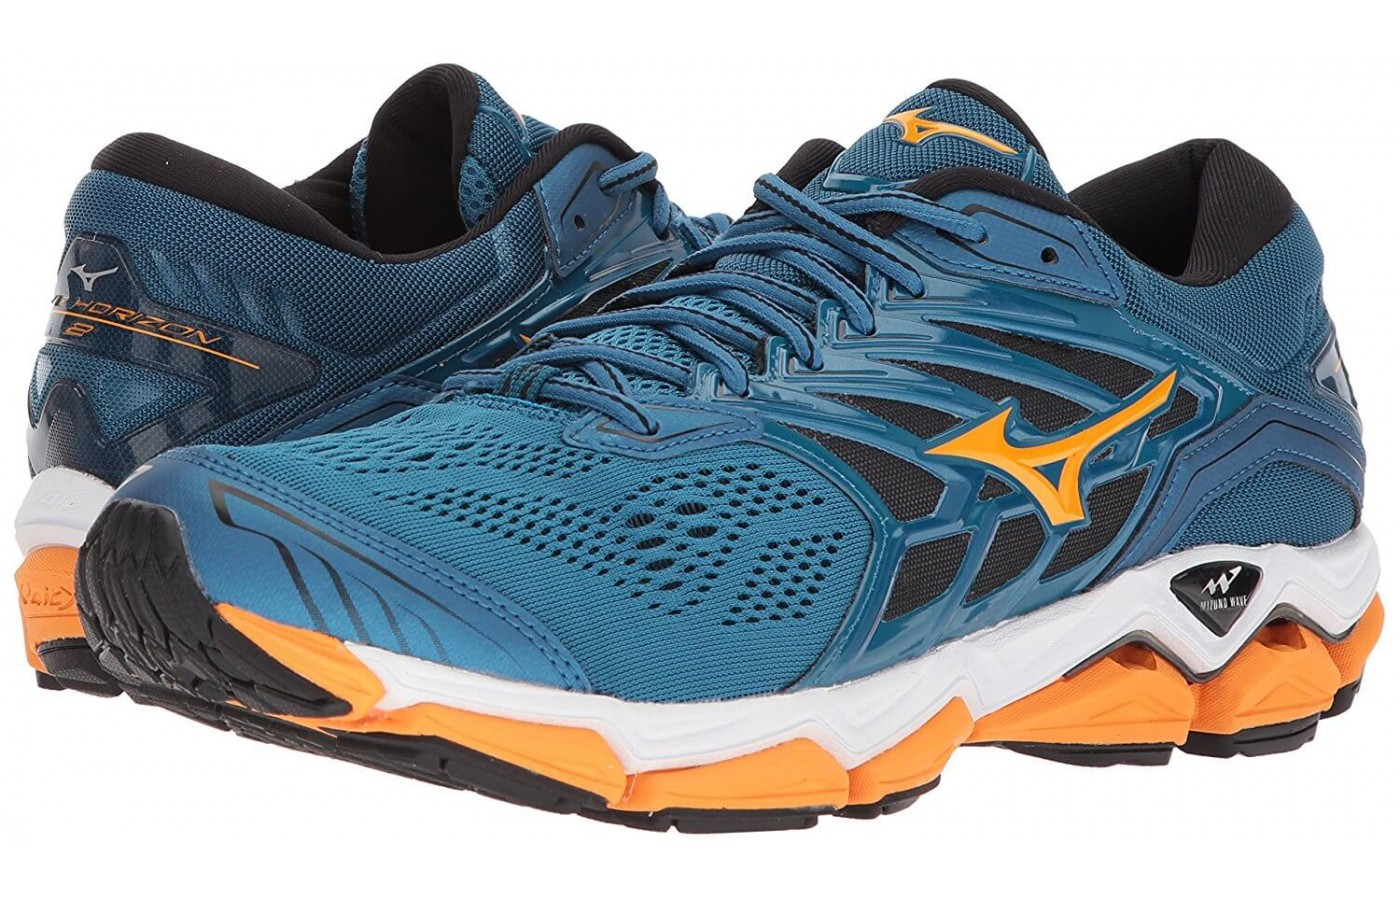 The Mizuno Wave Horizon 2 features a 3-layer midsole